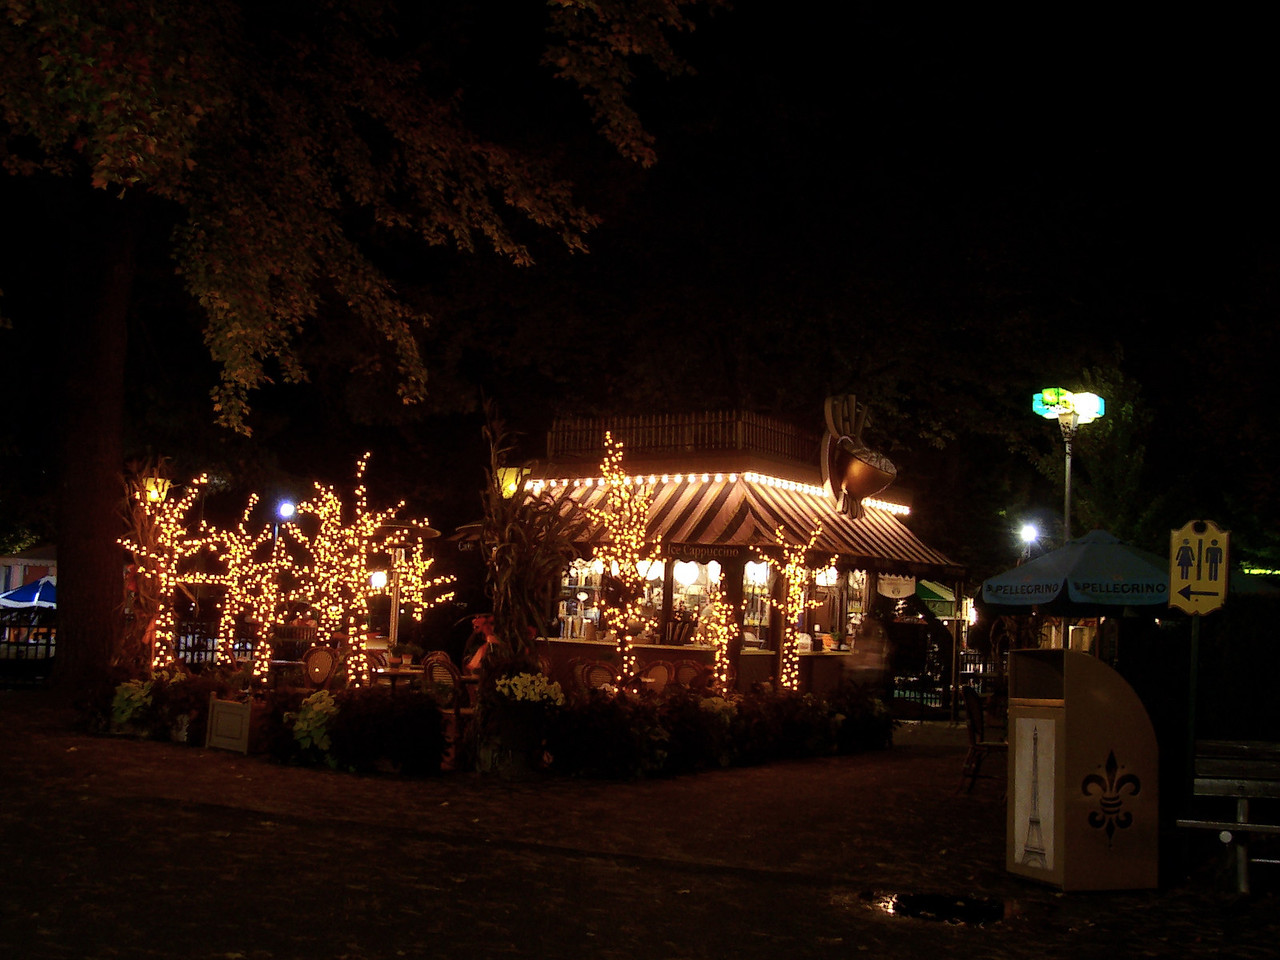 Cafe D'Or at night.